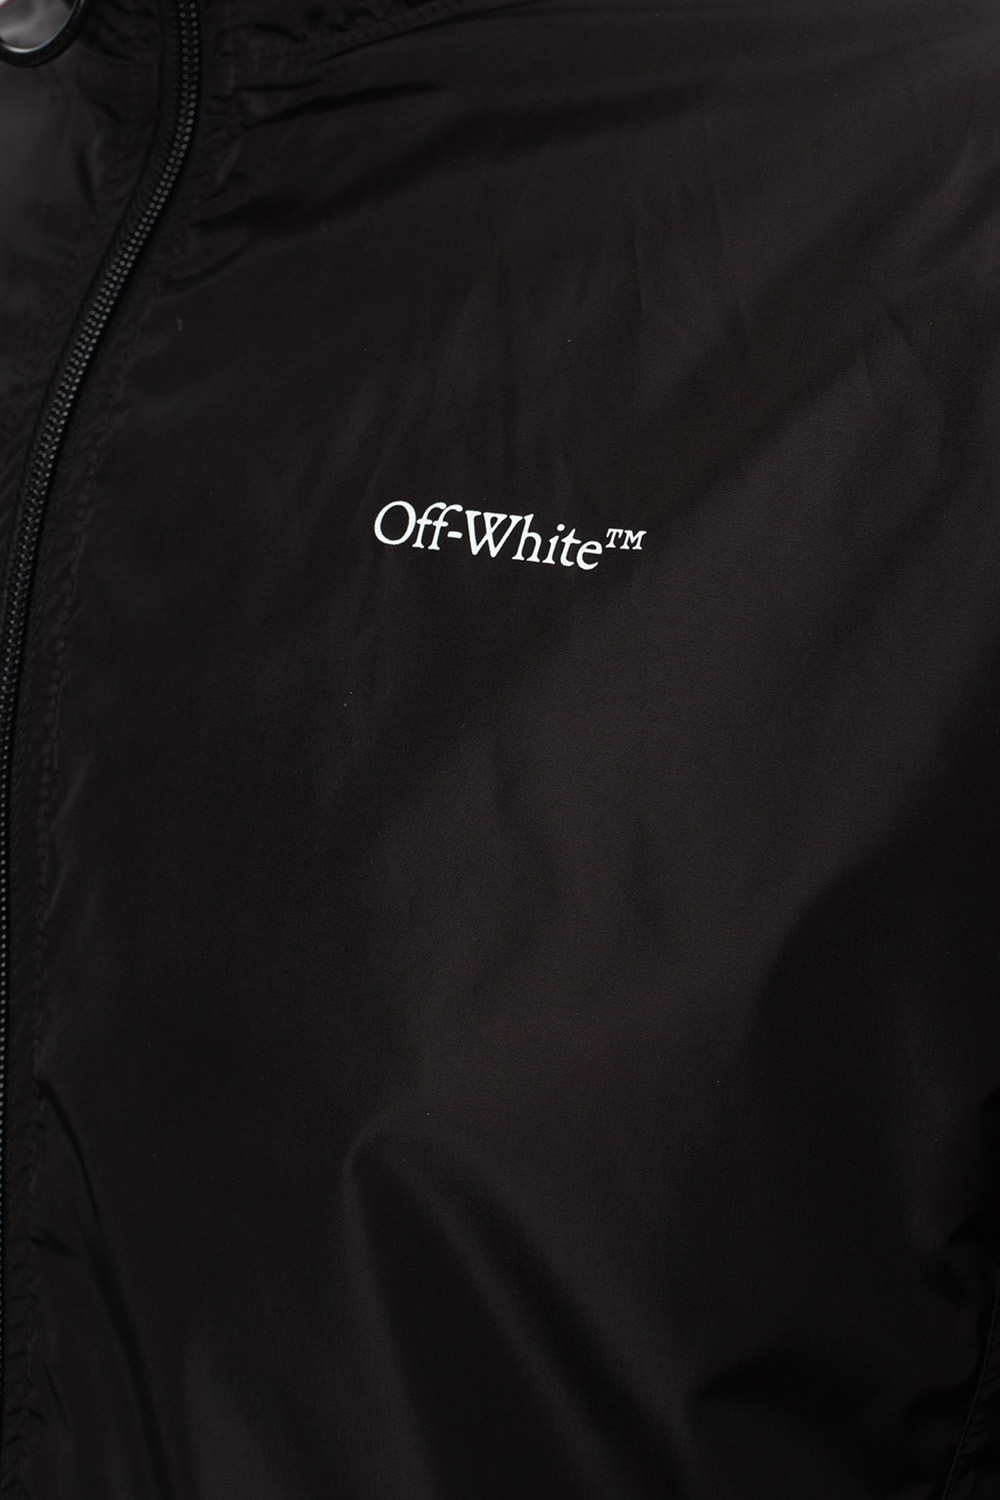 Off-White Jacket with logo